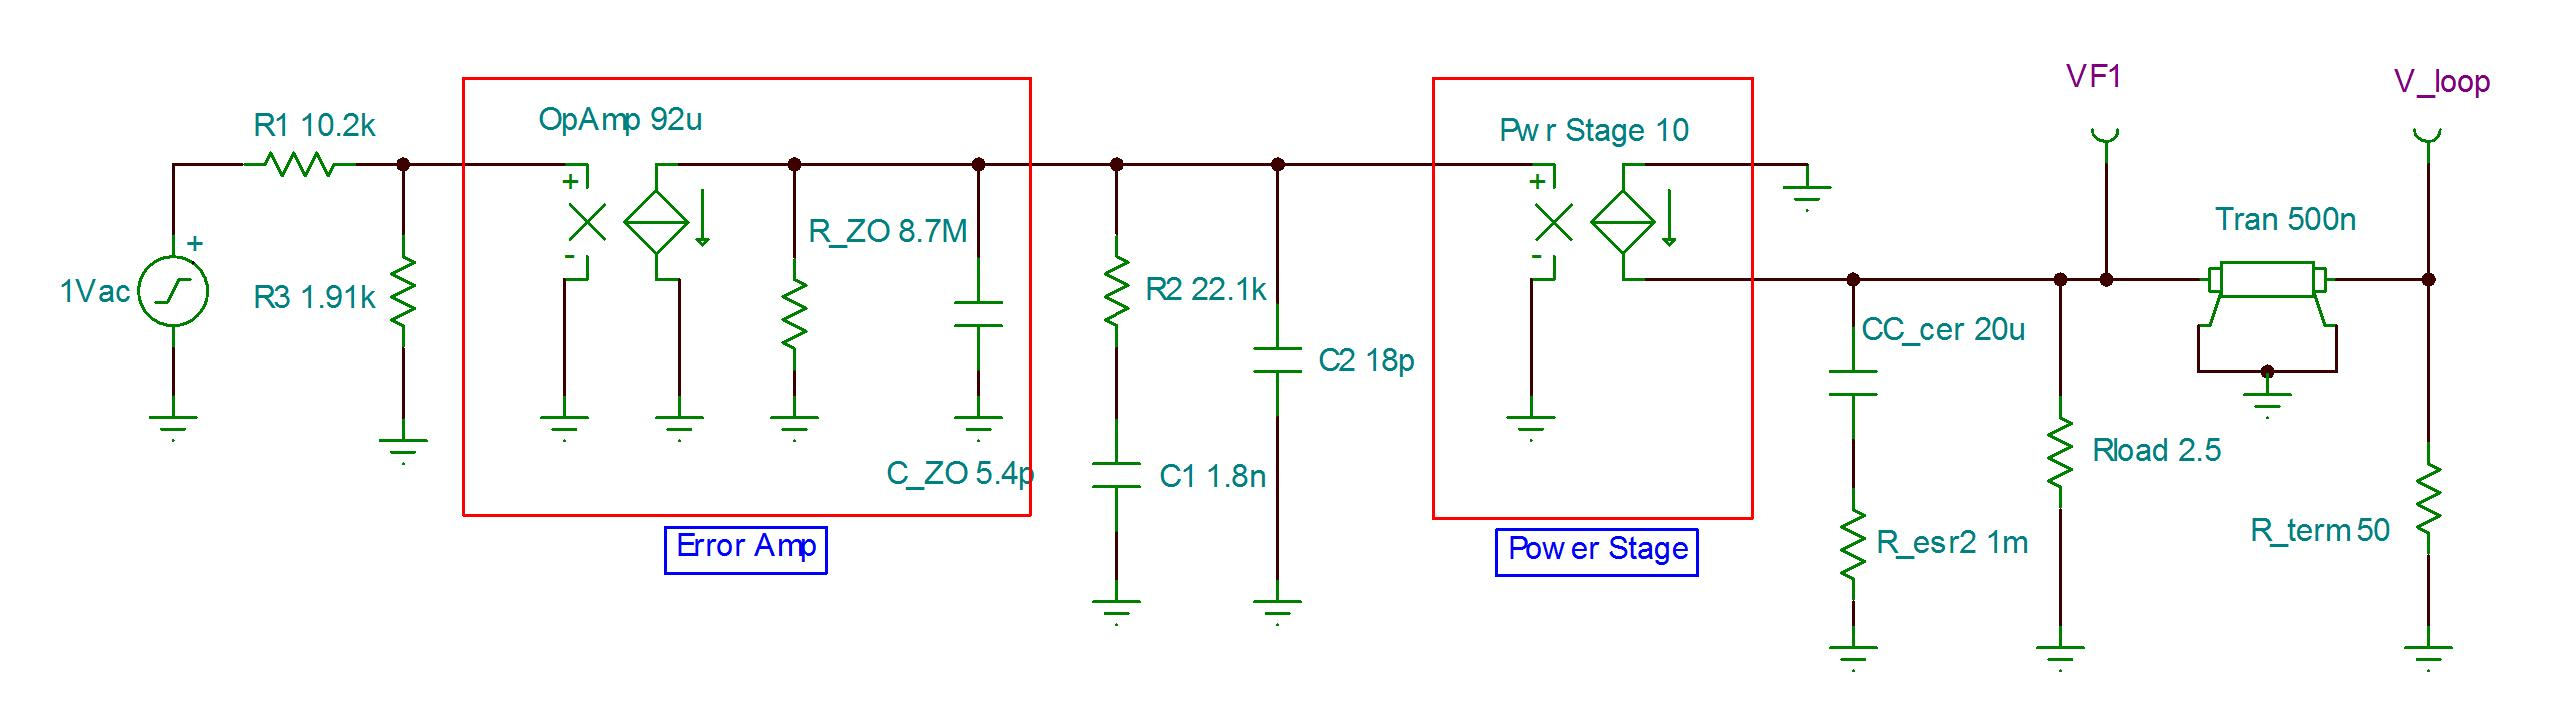 Power Tips Using A Simple Spice Model To Simulate Buck Control Voltage Controlled Capacitors And Inductors Current Sources Both Gains Adding Lossless Transmission Line The Output Introduces Phase Lag Improving Accuracy At